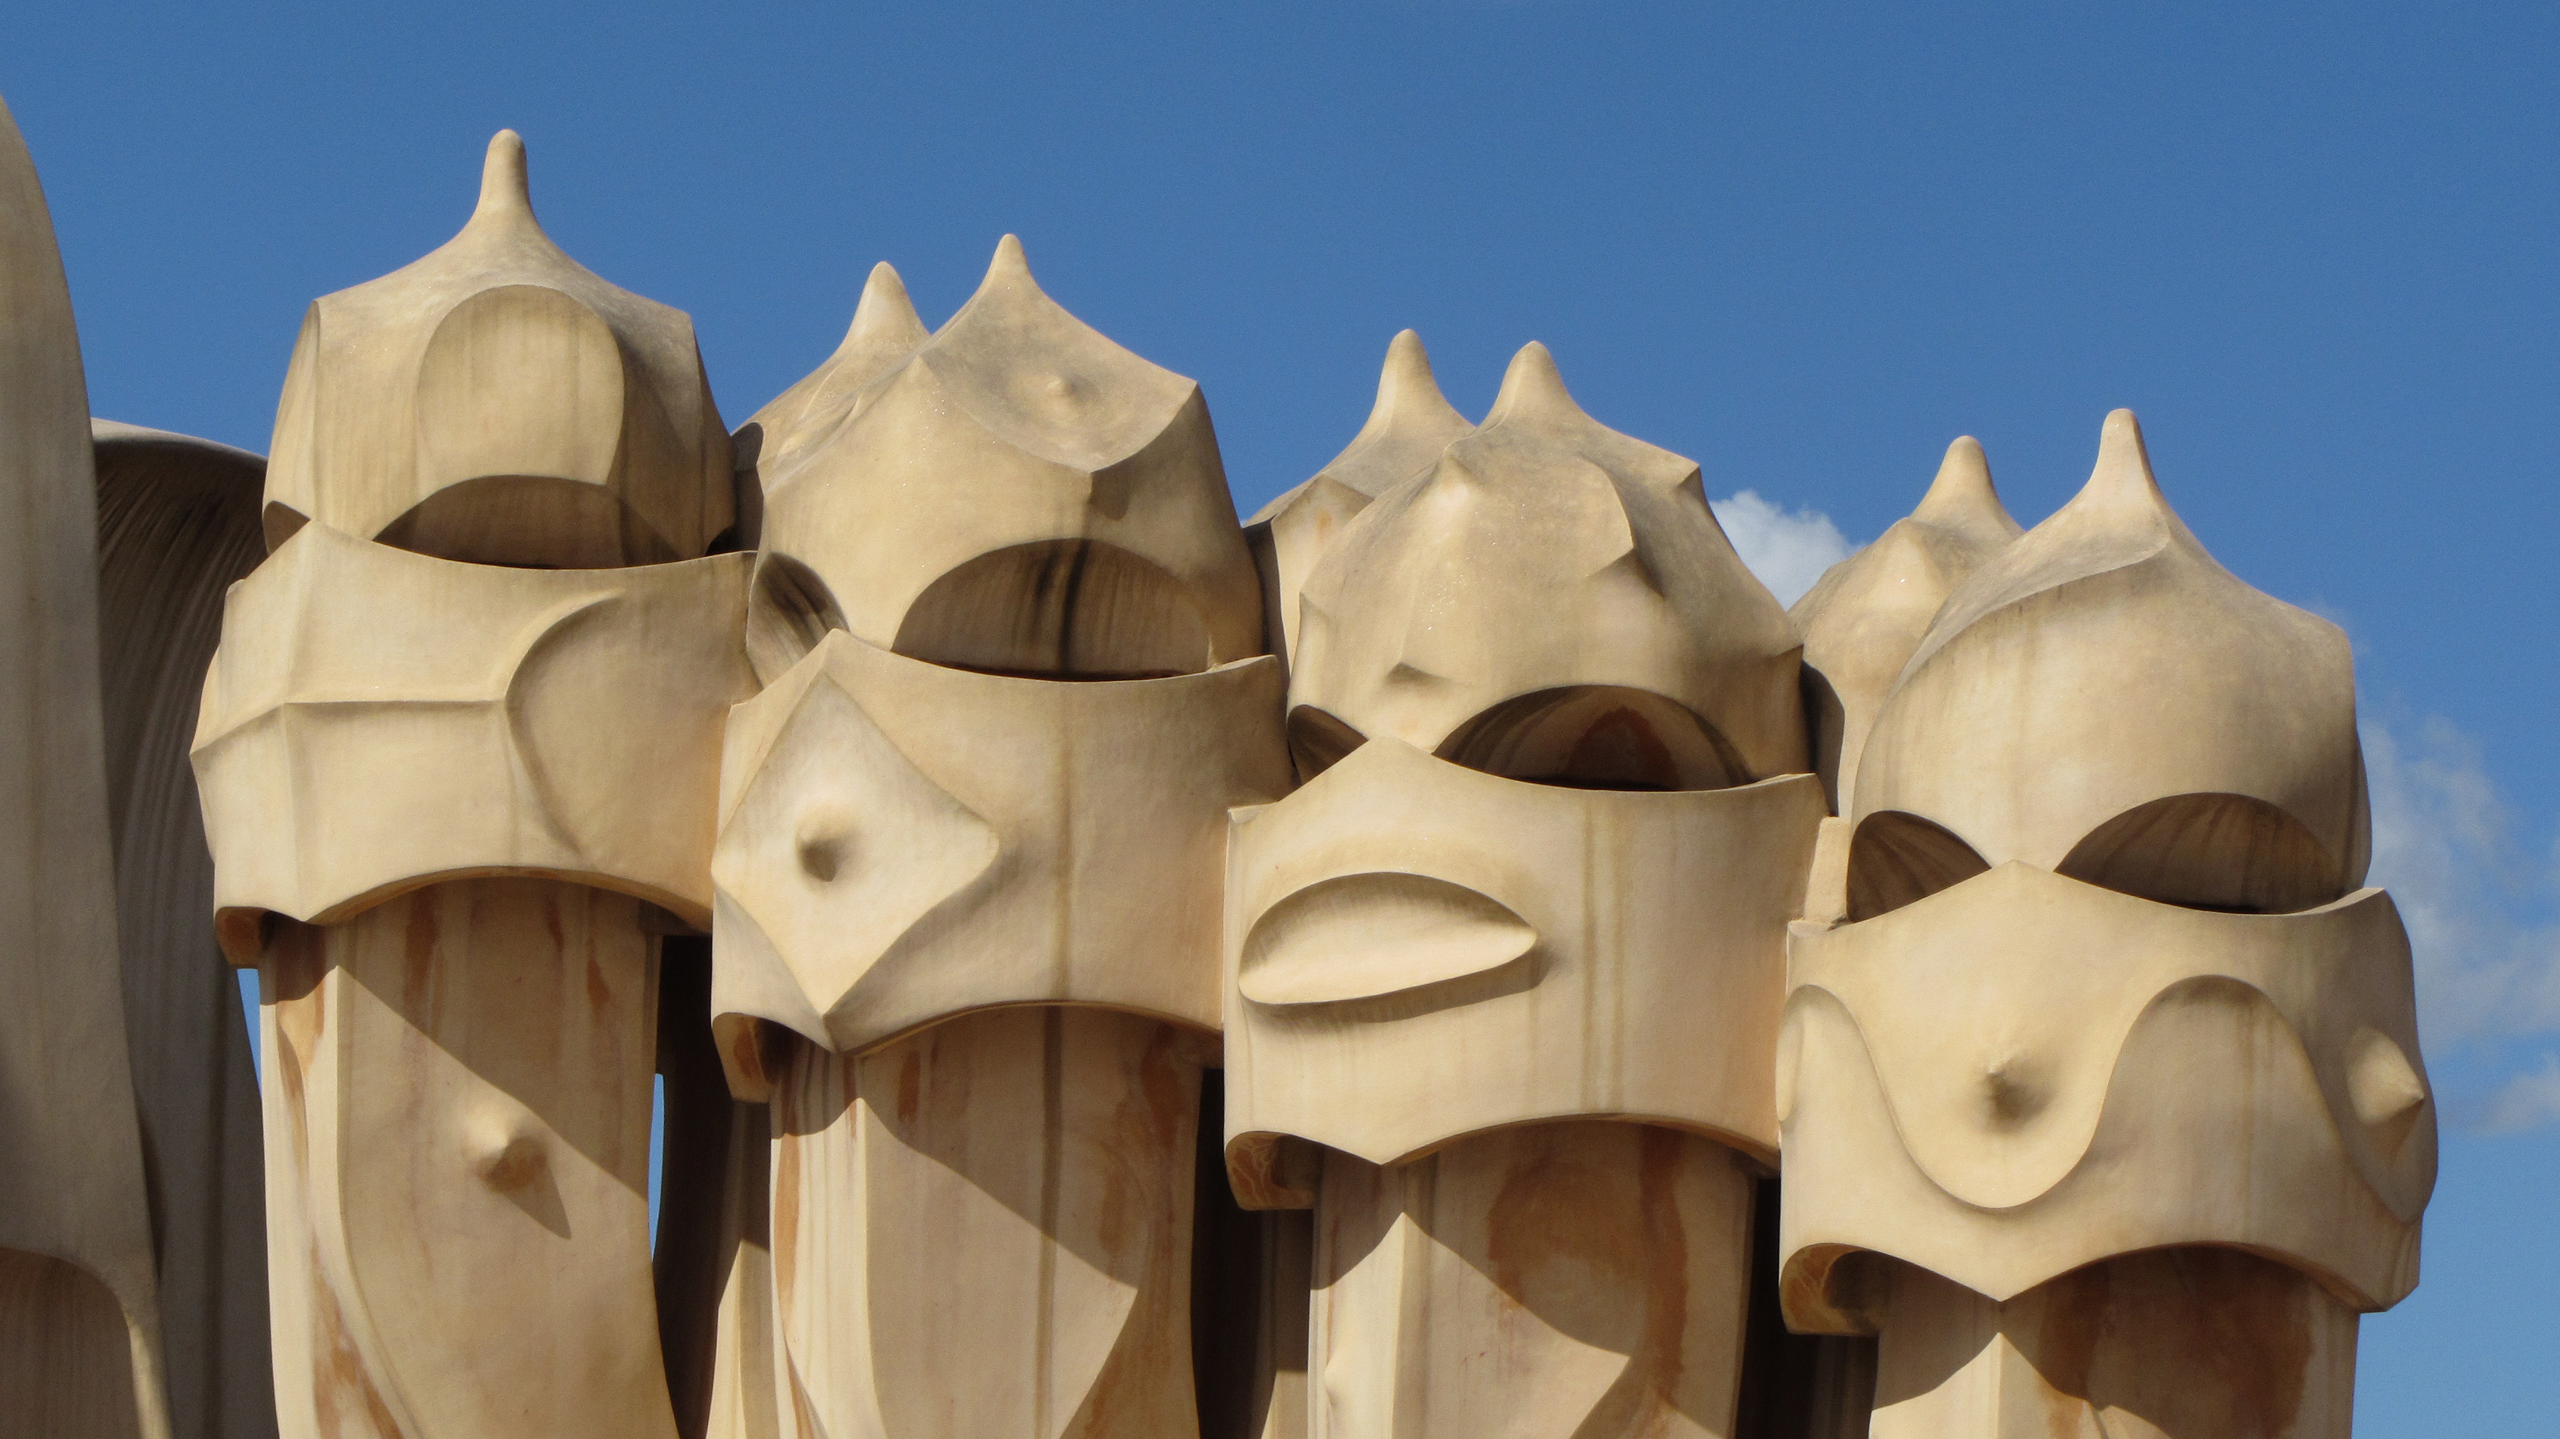 Chimneys on the roof of Casa Milà in Barcelona